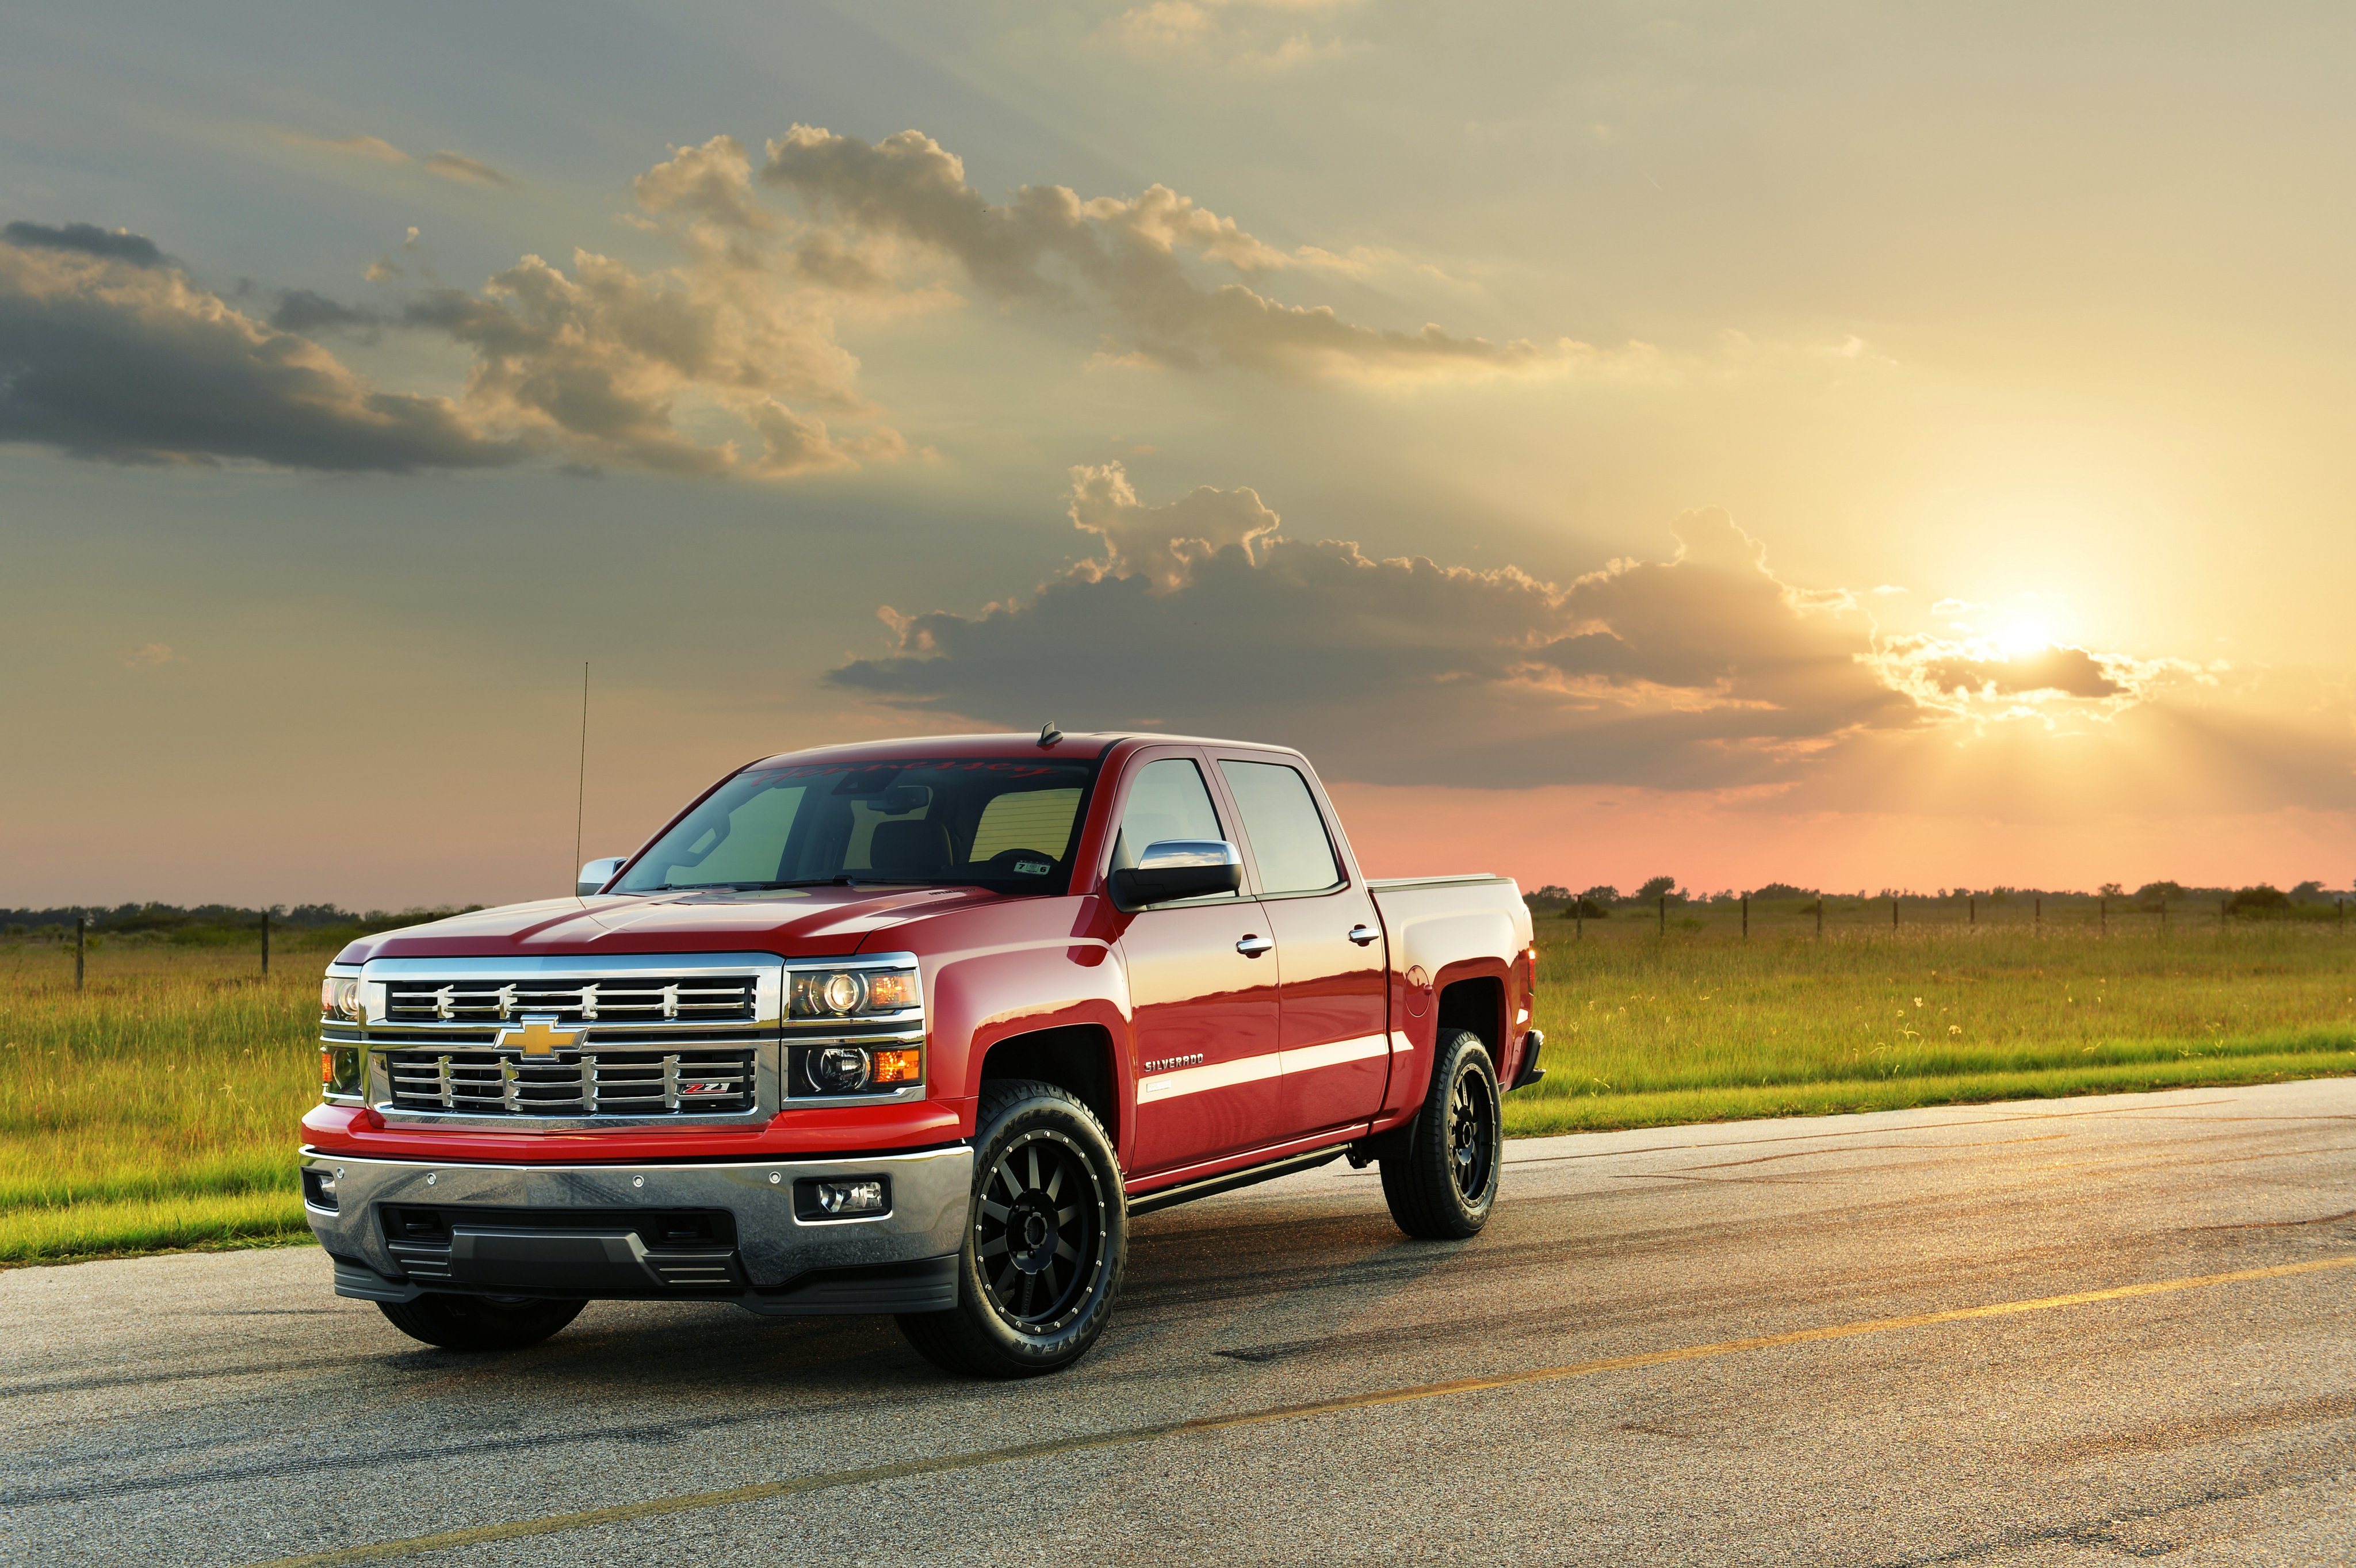 2015 hennessey chevrolet silverado z71 hpe550 pickup muscle tuning wallpaper 4096x2726 461870 wallpaperup